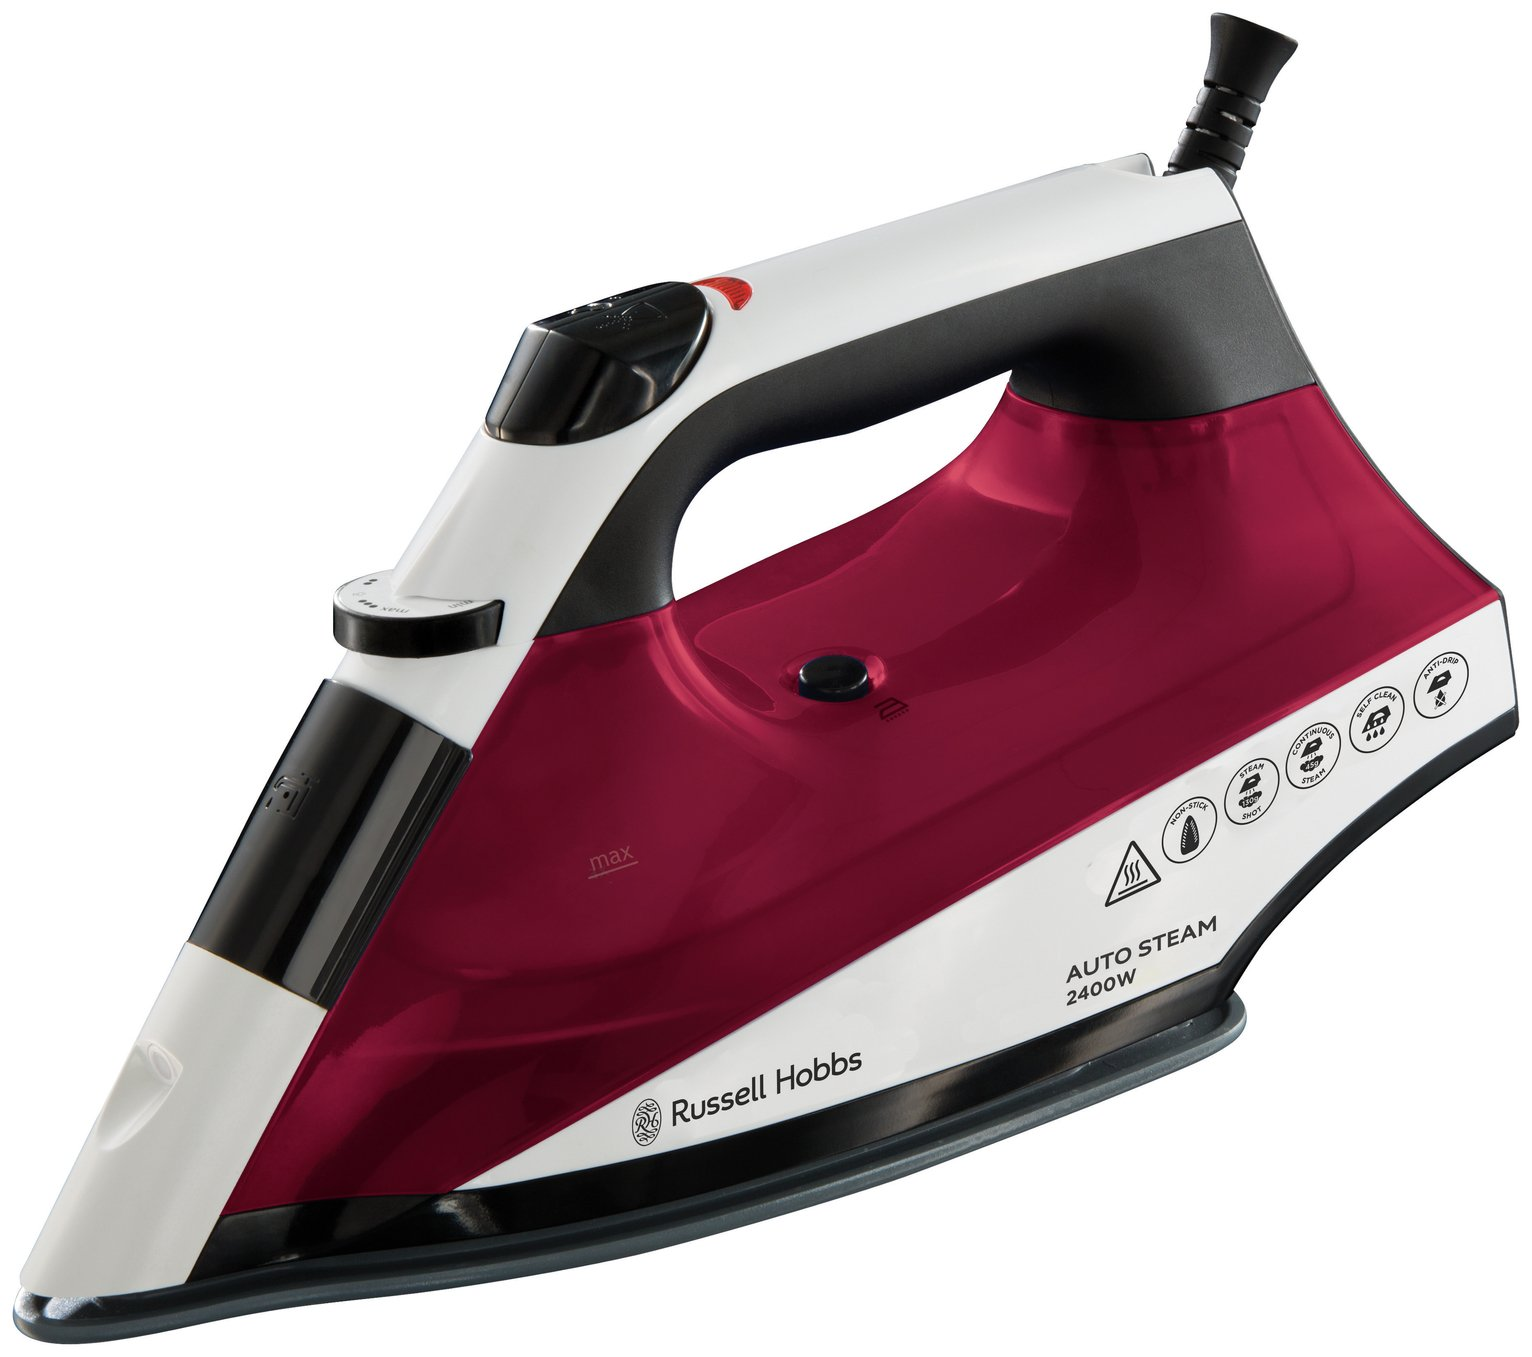 Russell Hobbs 22520 Autosteam Pro Steam Iron